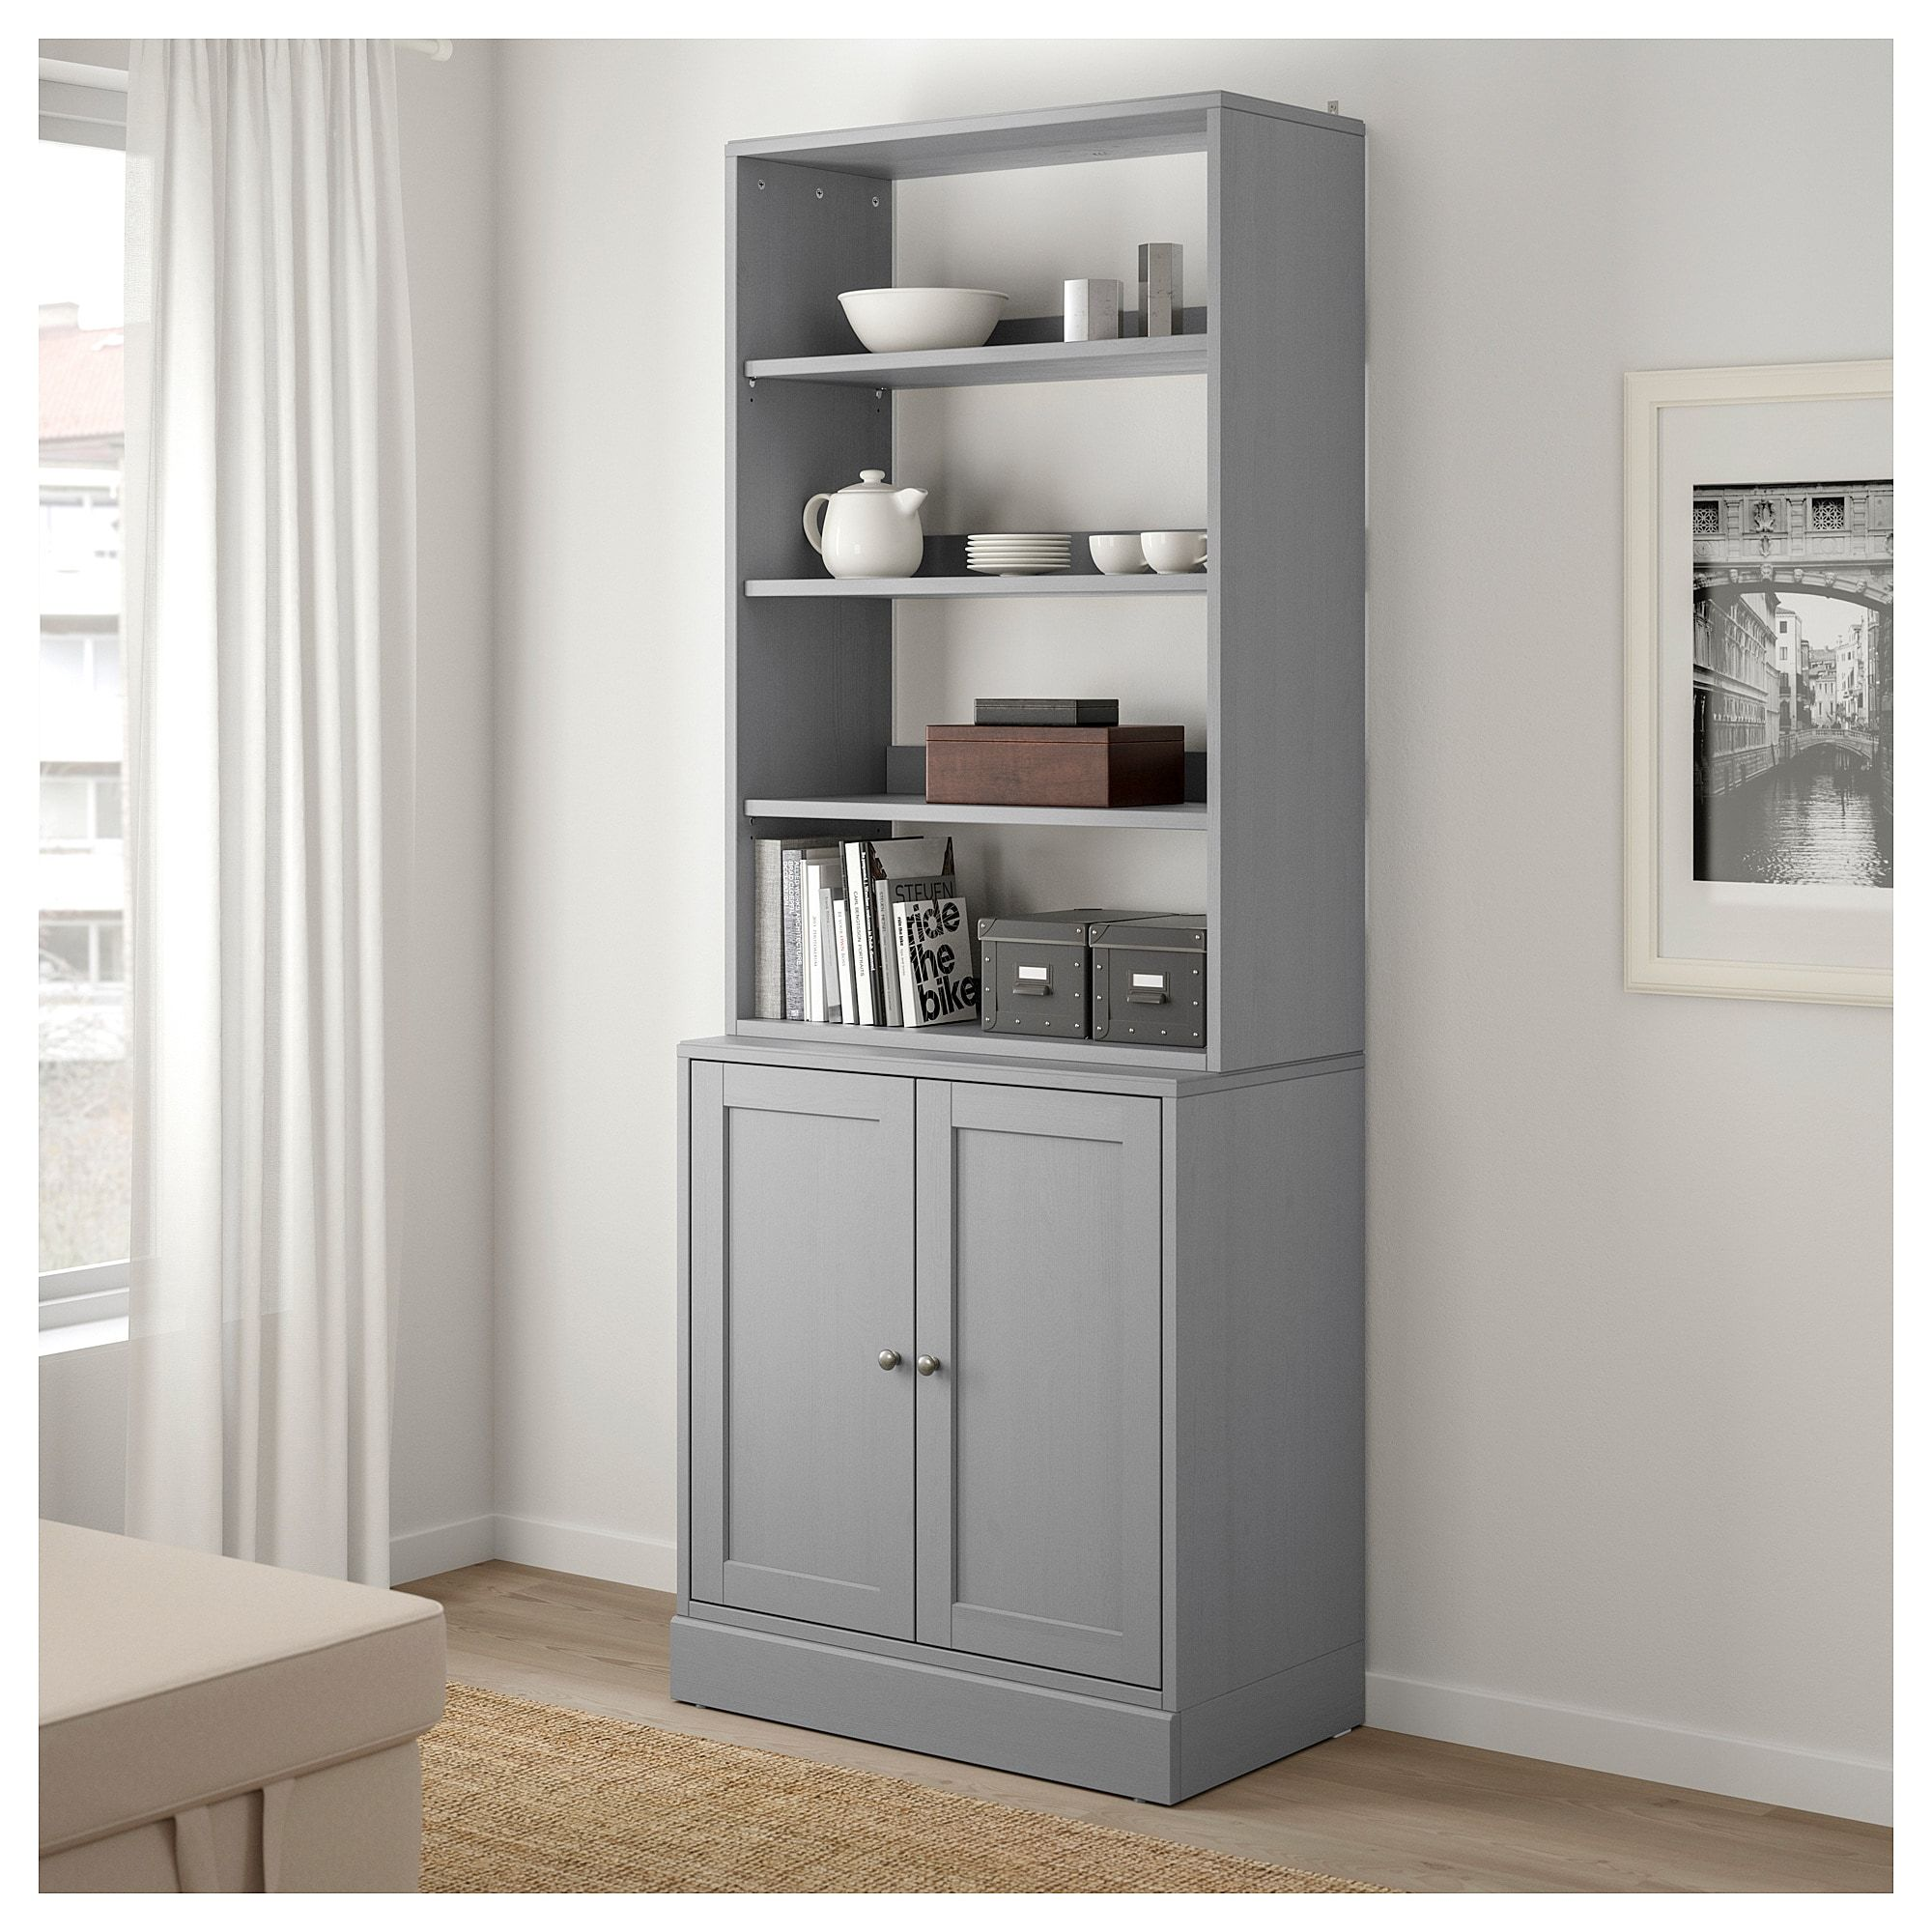 Best Ikea Havsta Storage Combination Gray Shelves Ikea 400 x 300